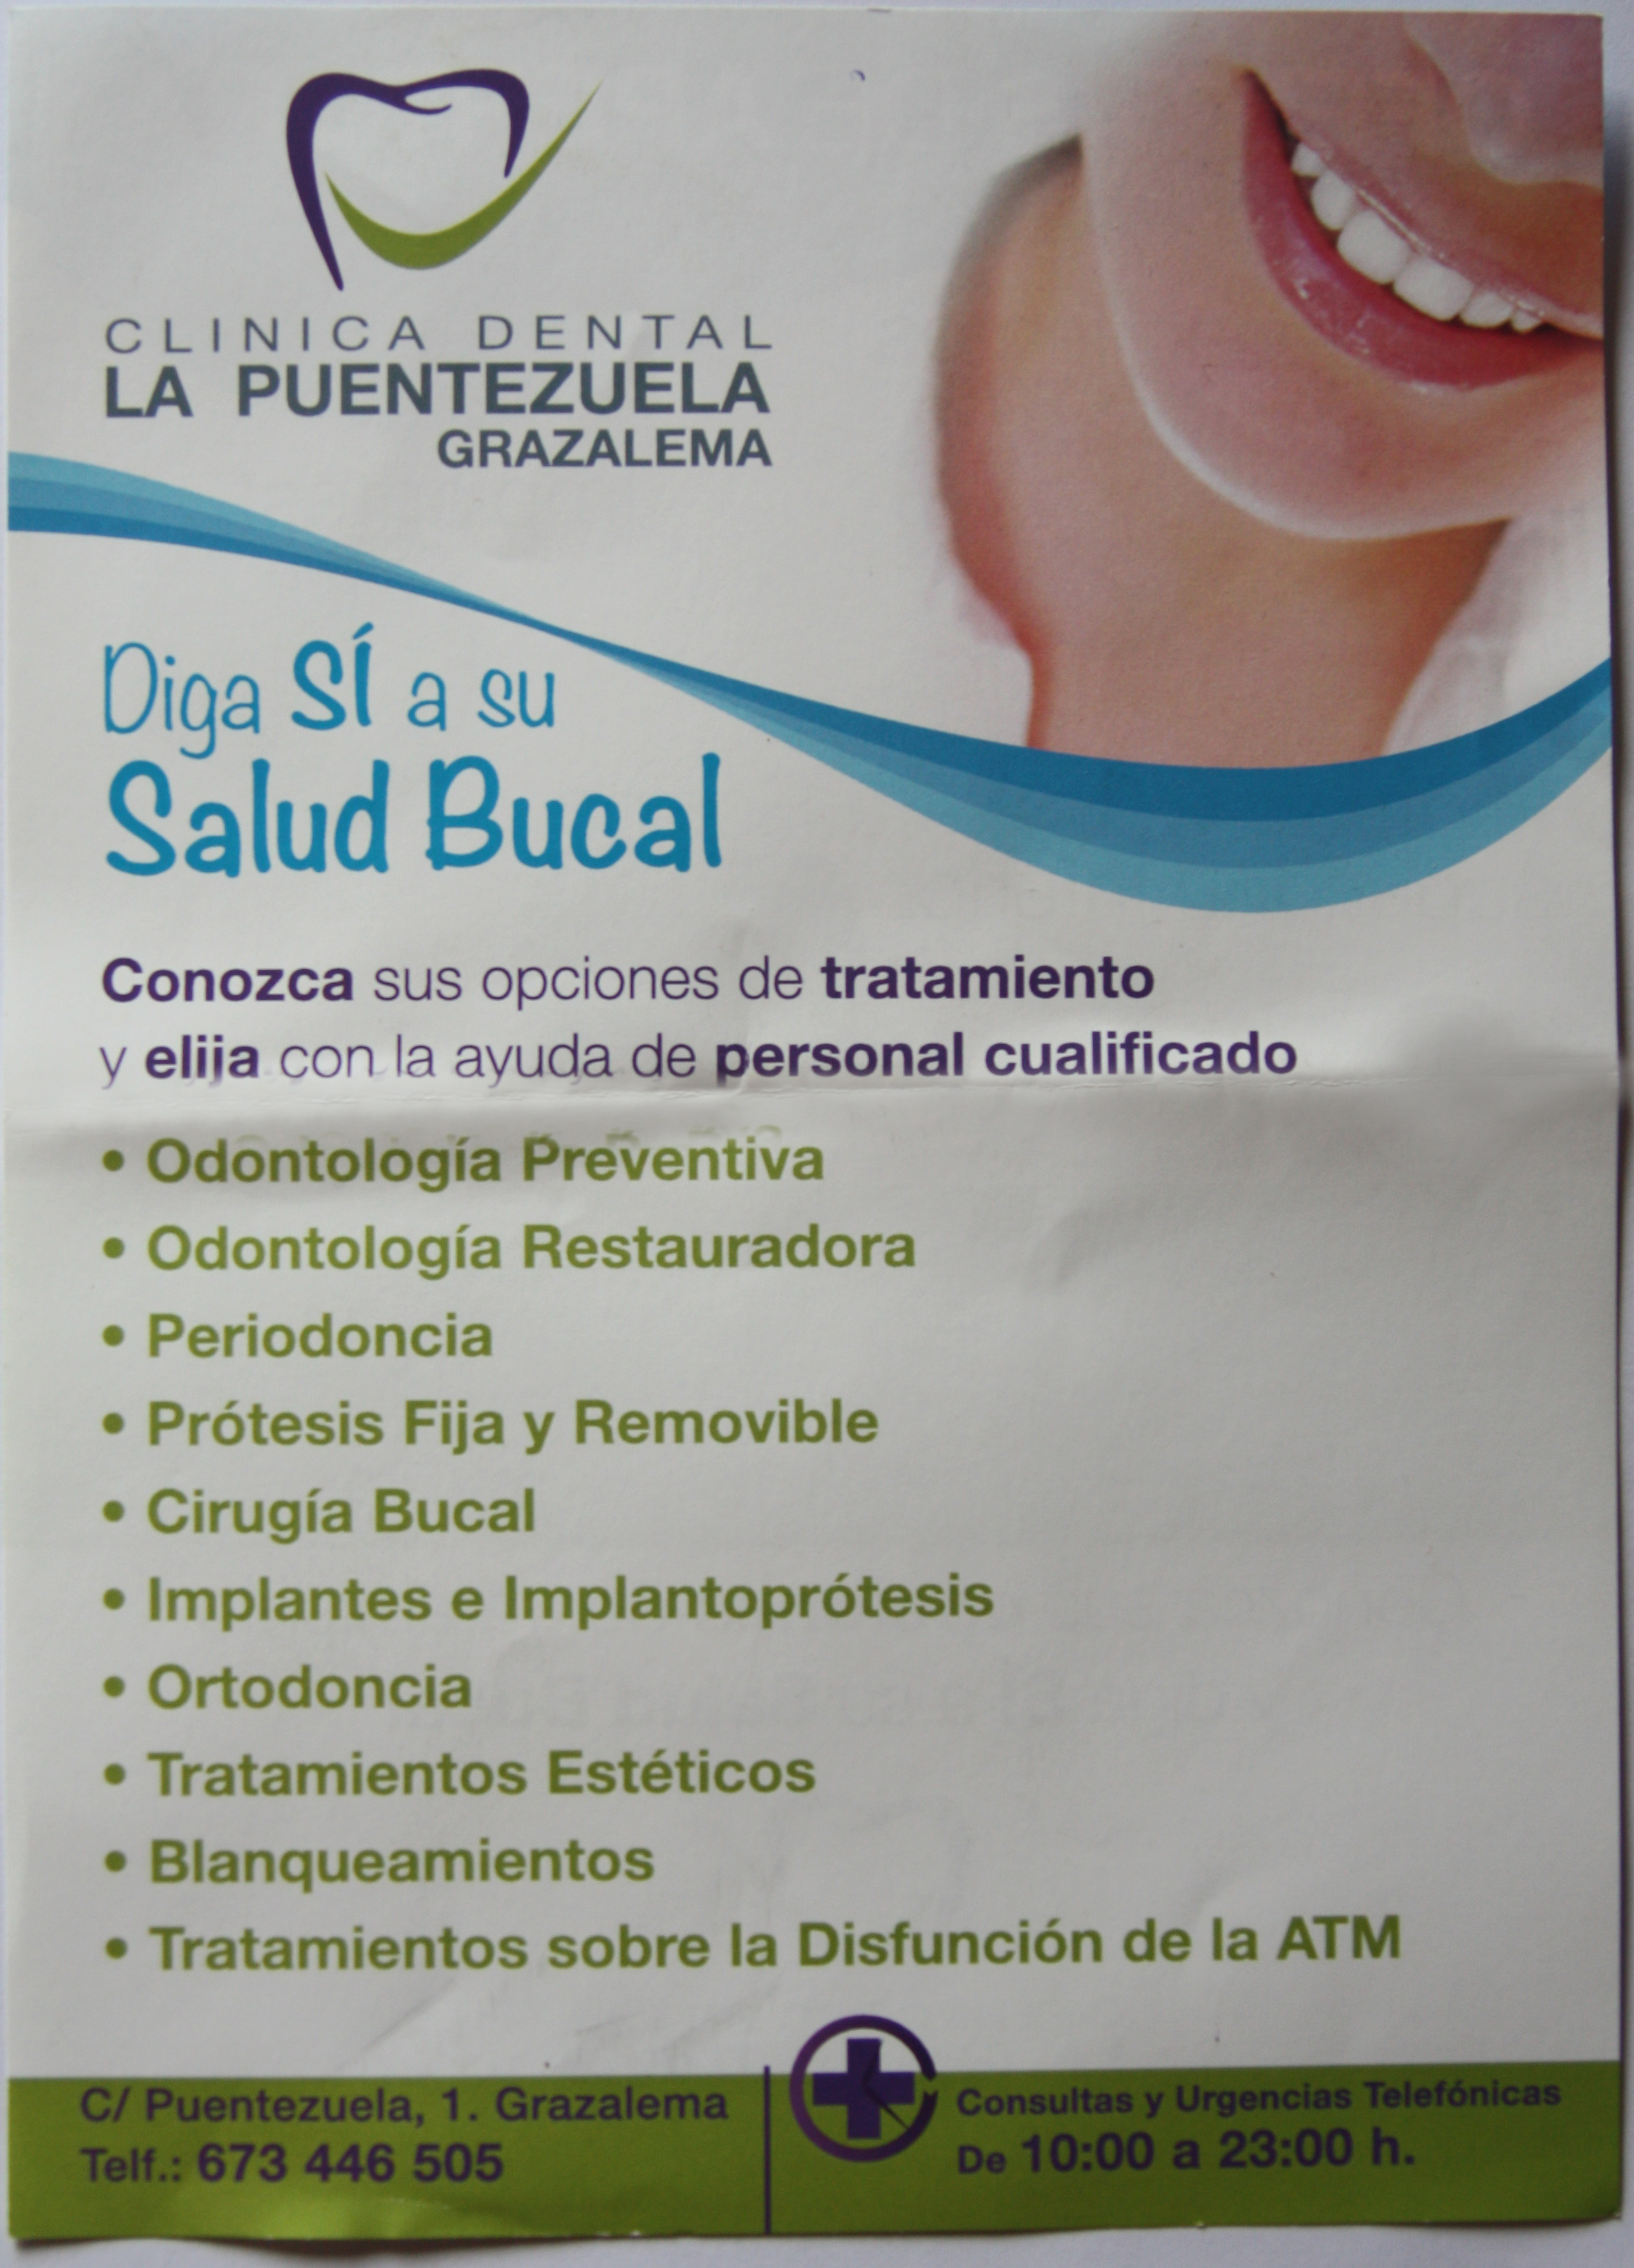 Clinica dental La Puentezuela